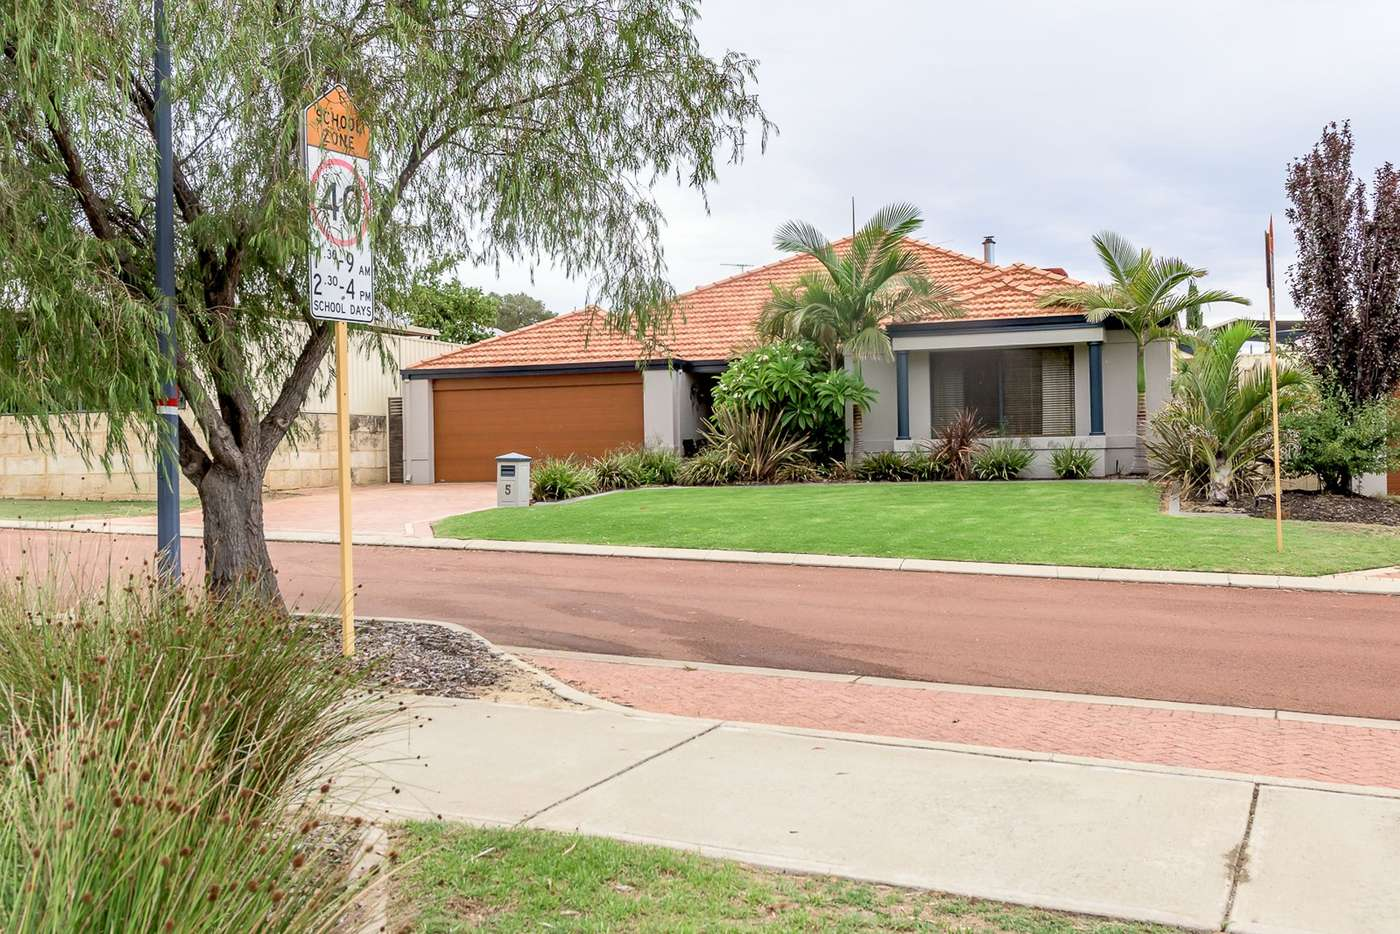 Main view of Homely house listing, 5 Tuomey Follow, Baldivis WA 6171